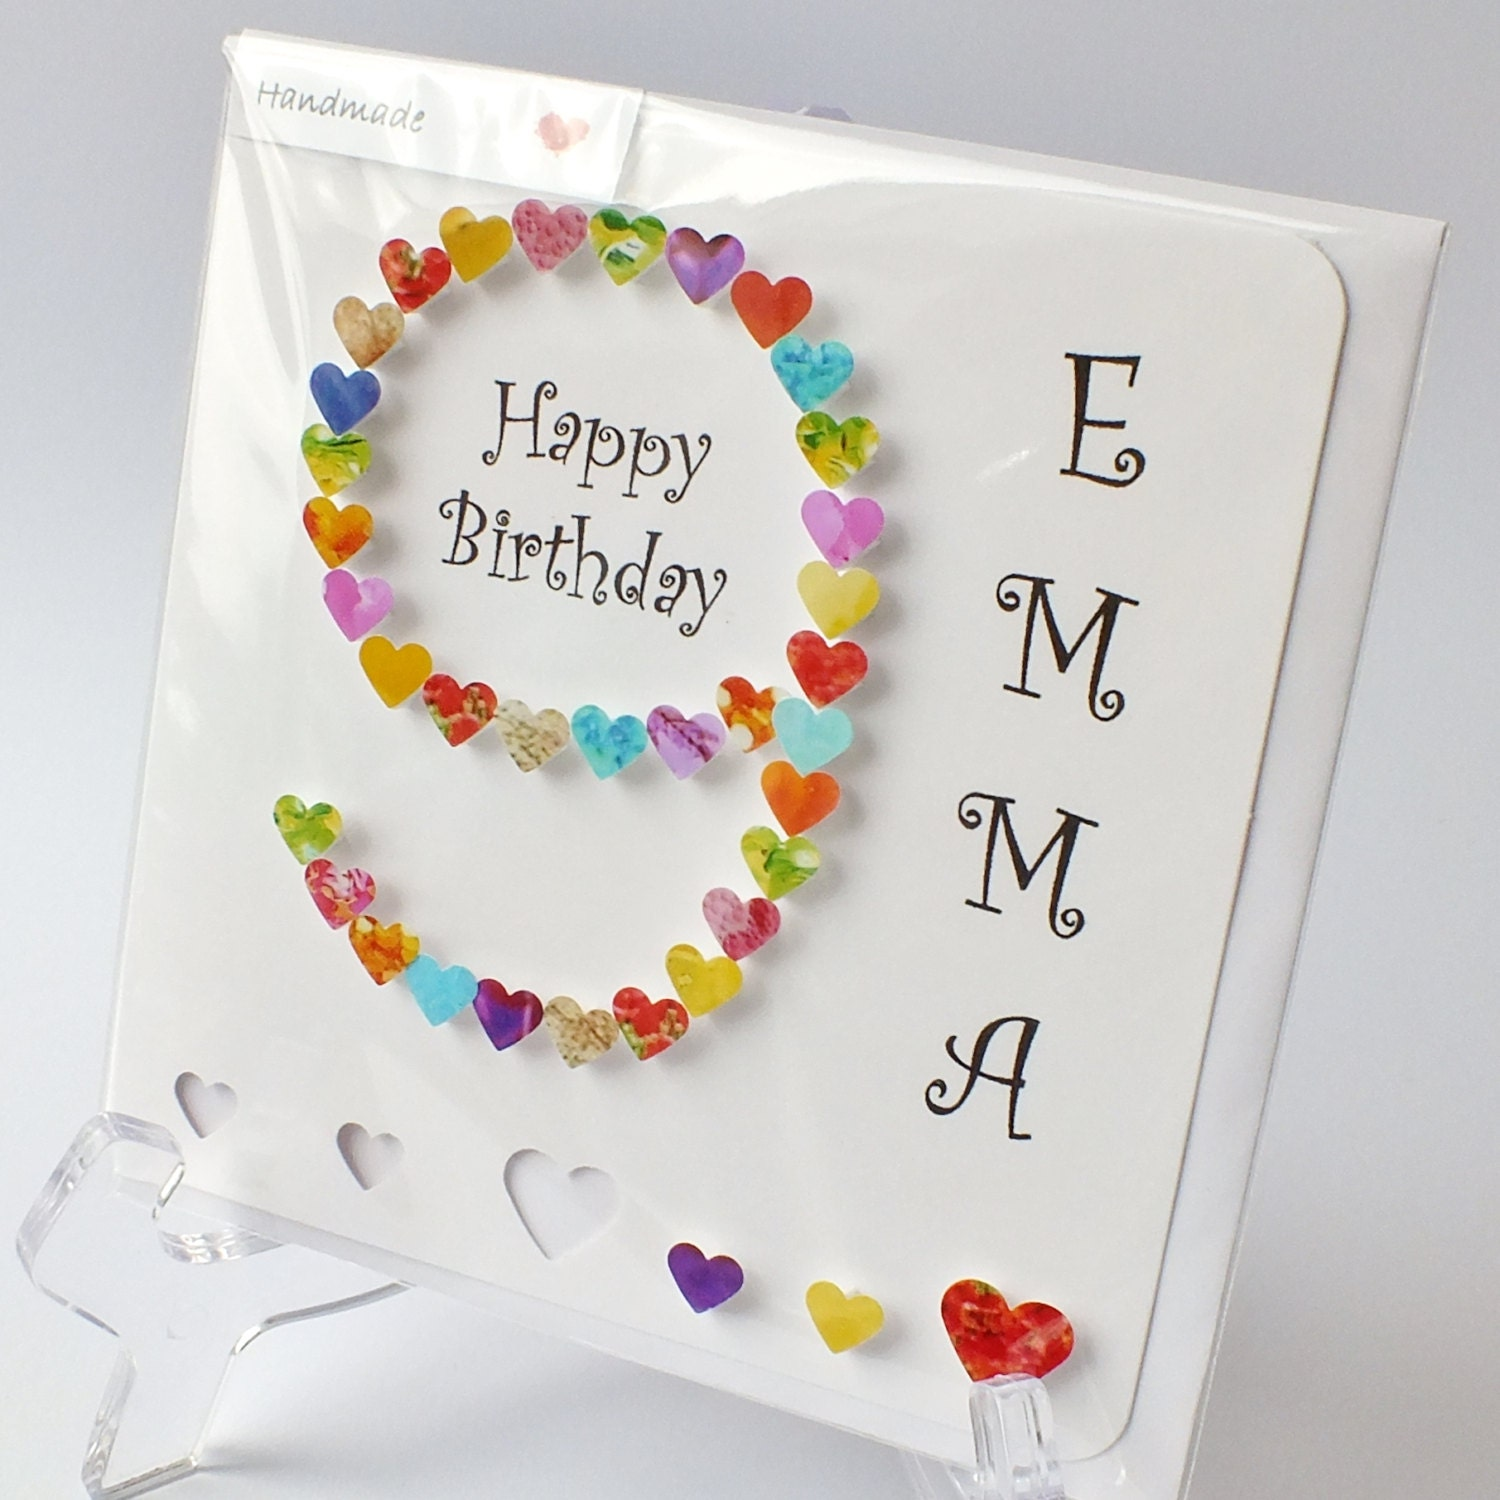 Handmade 3D 9 Card Personalised 9th Birthday Card